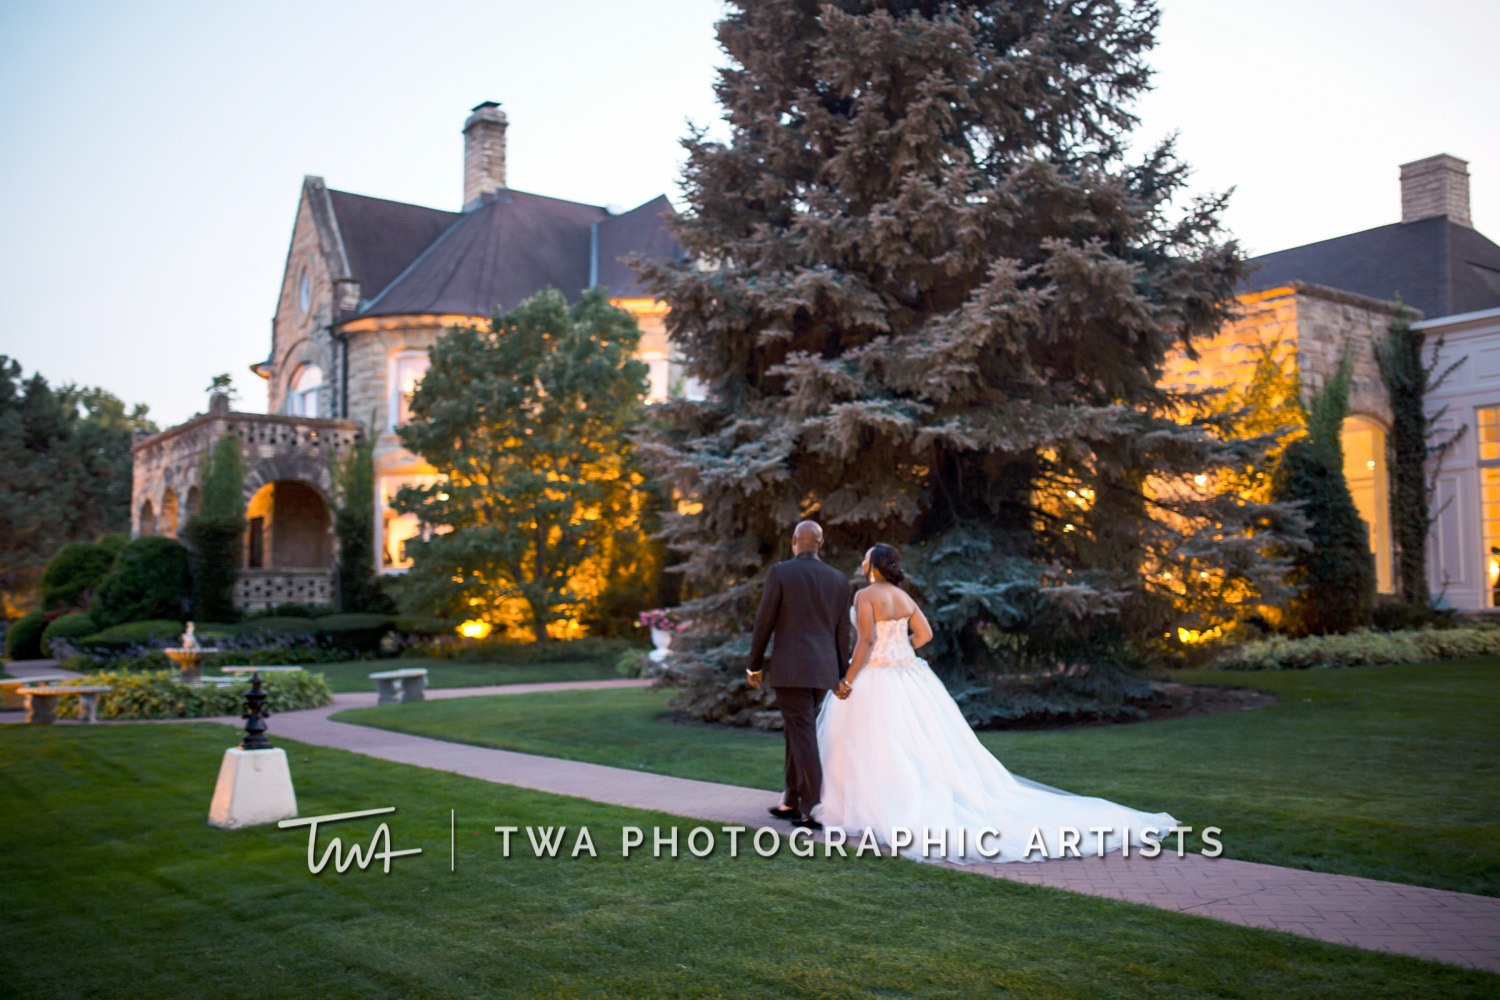 Chicago-Wedding-Photographer-TWA-Photographic-Artists-Haley-Mansion_Graves_Moffett_JM-039_0527